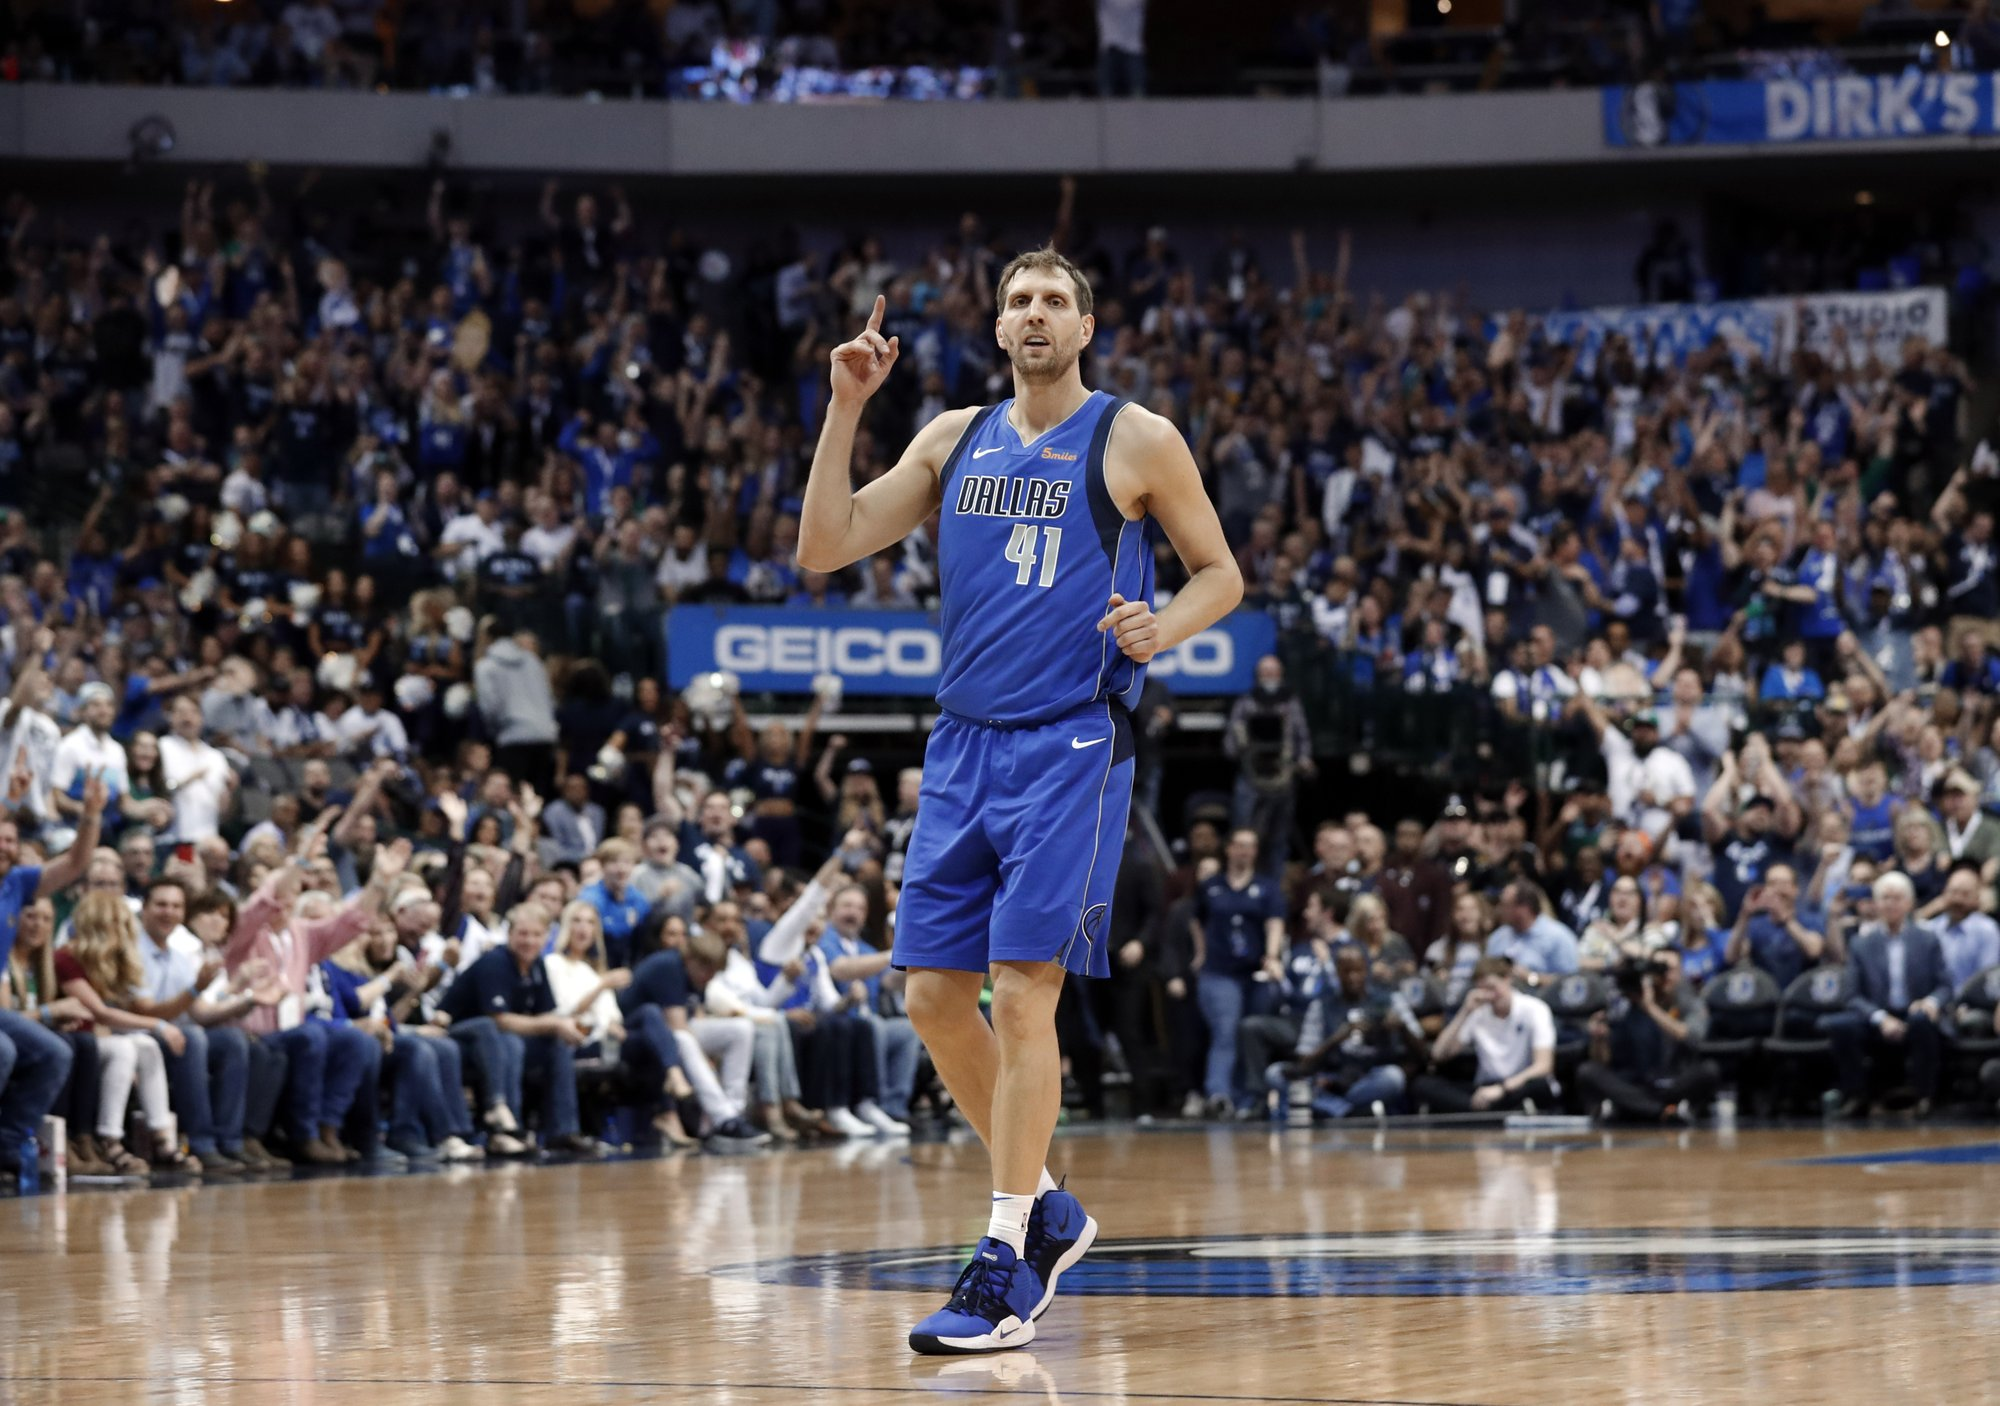 Nowitzki says goodbye at home, set to visit Spurs in finale